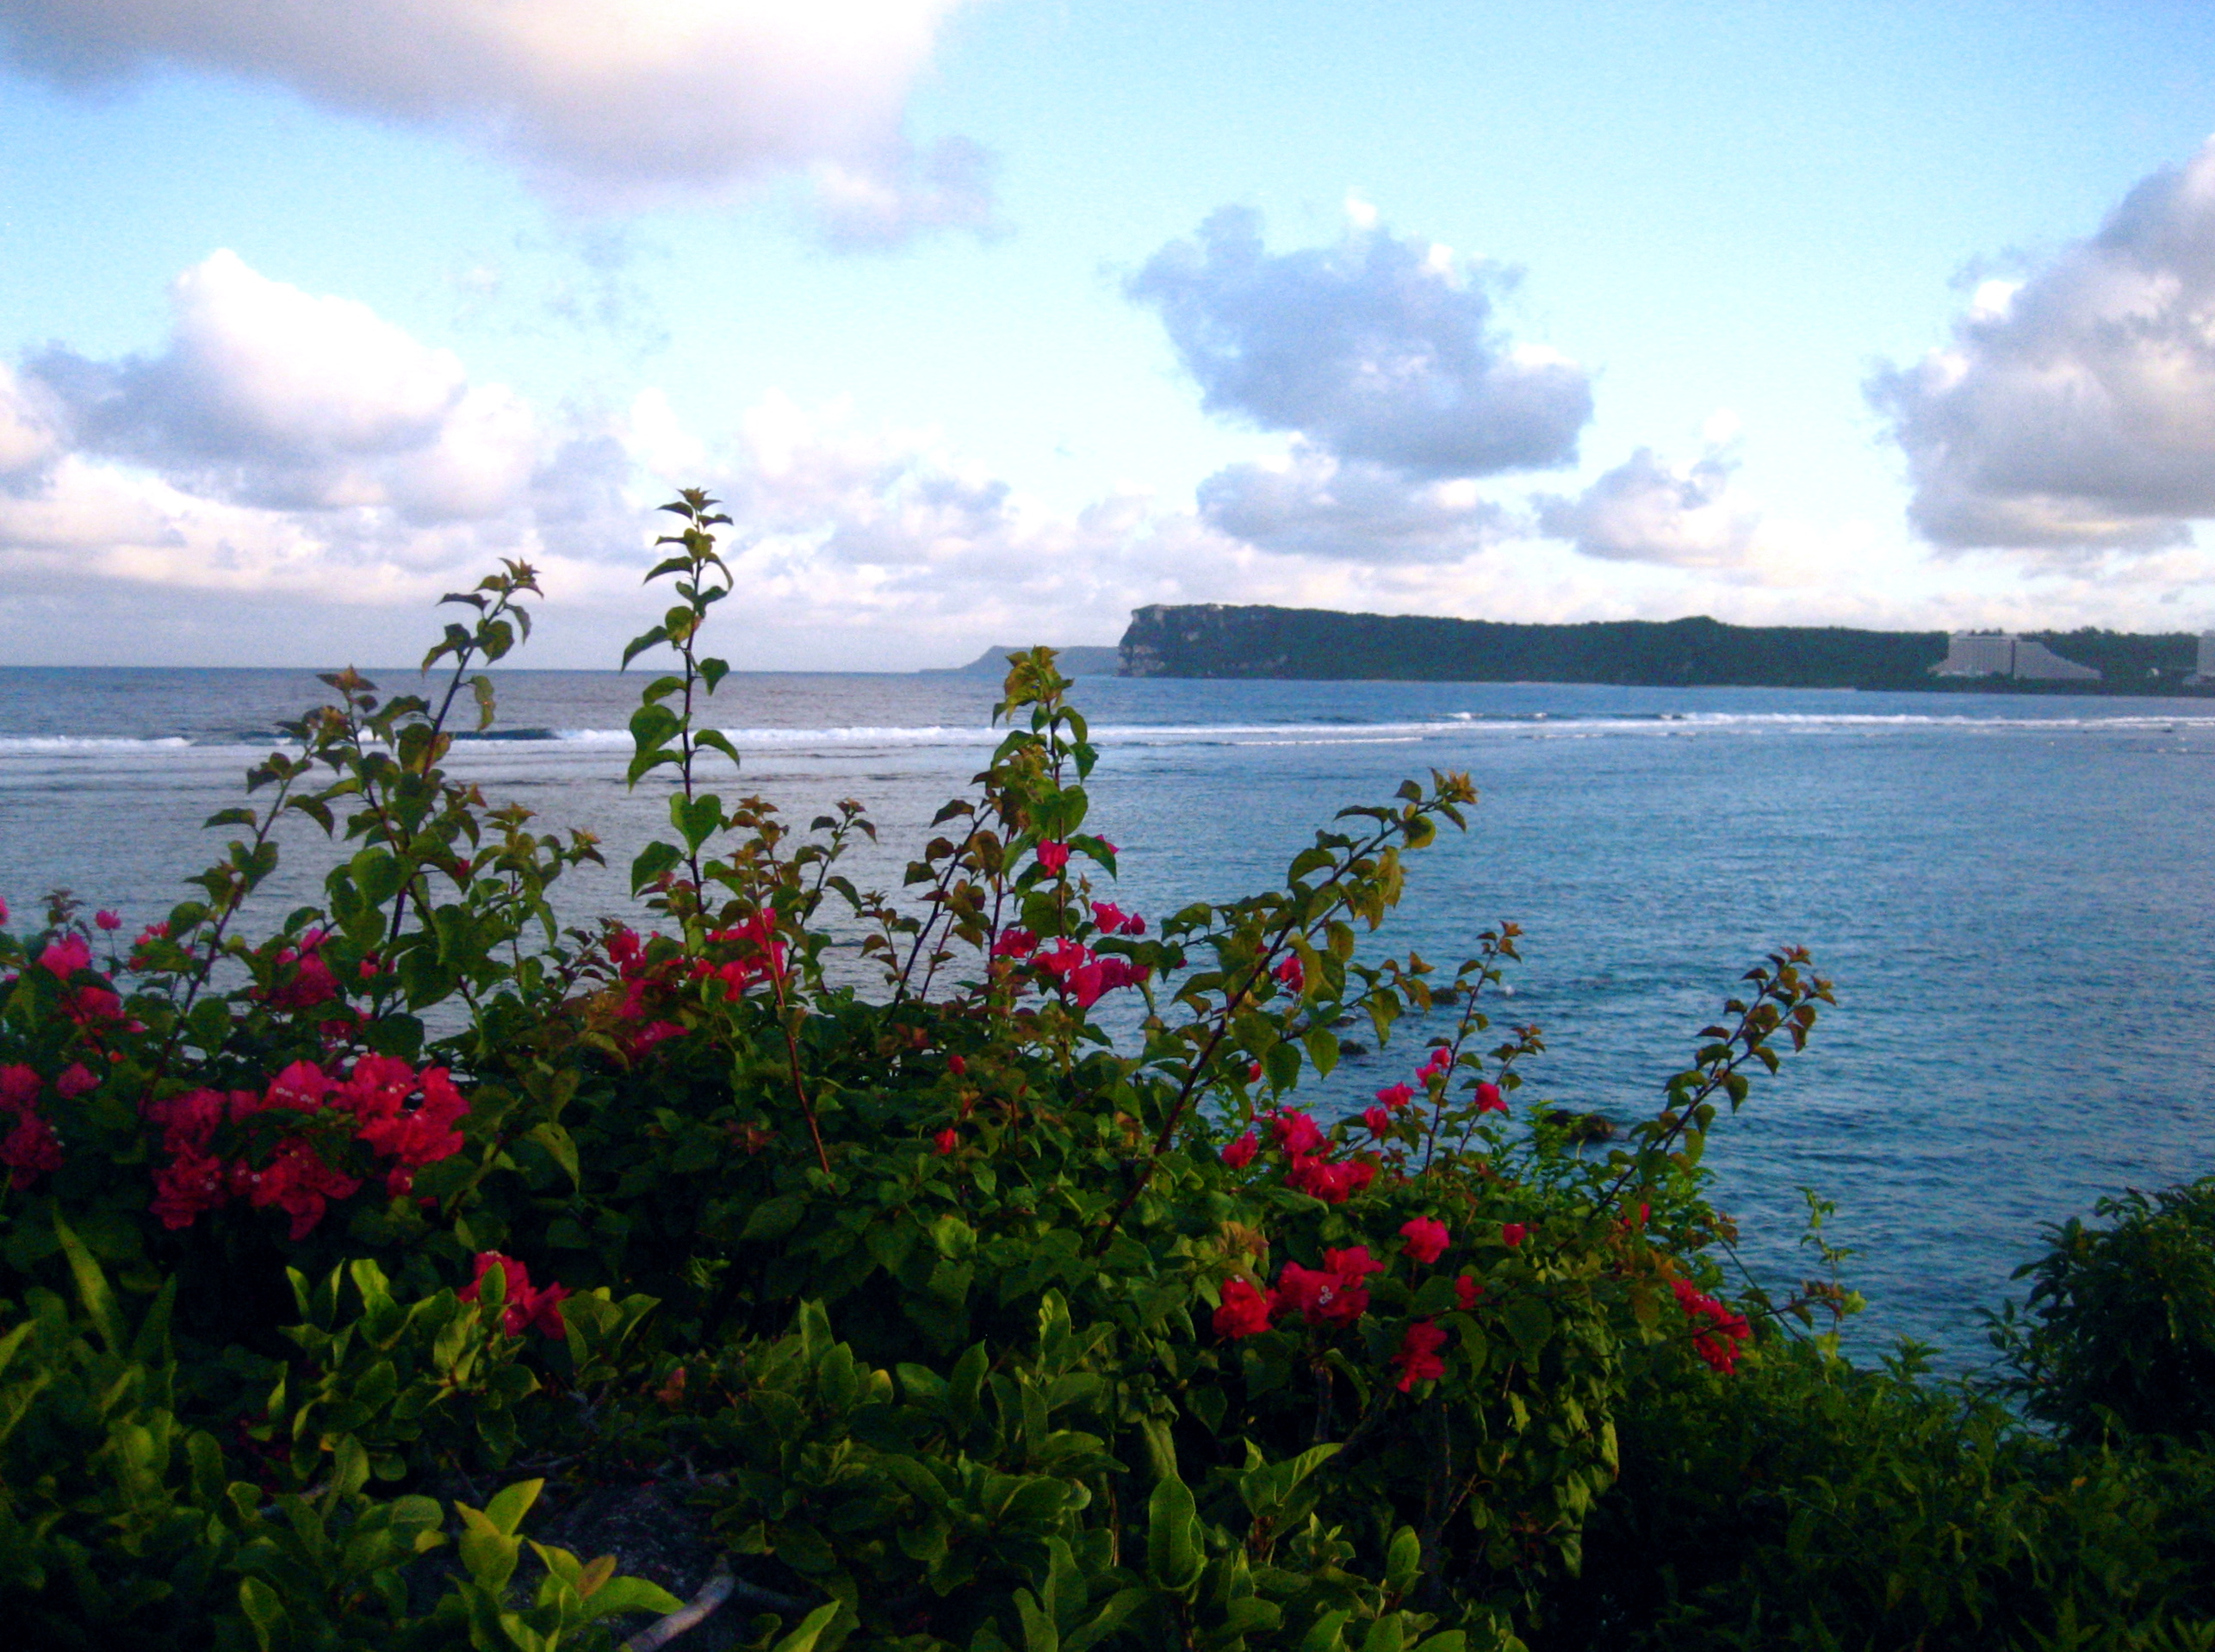 Coastal view in Micronesia - by Molly Holzschlag